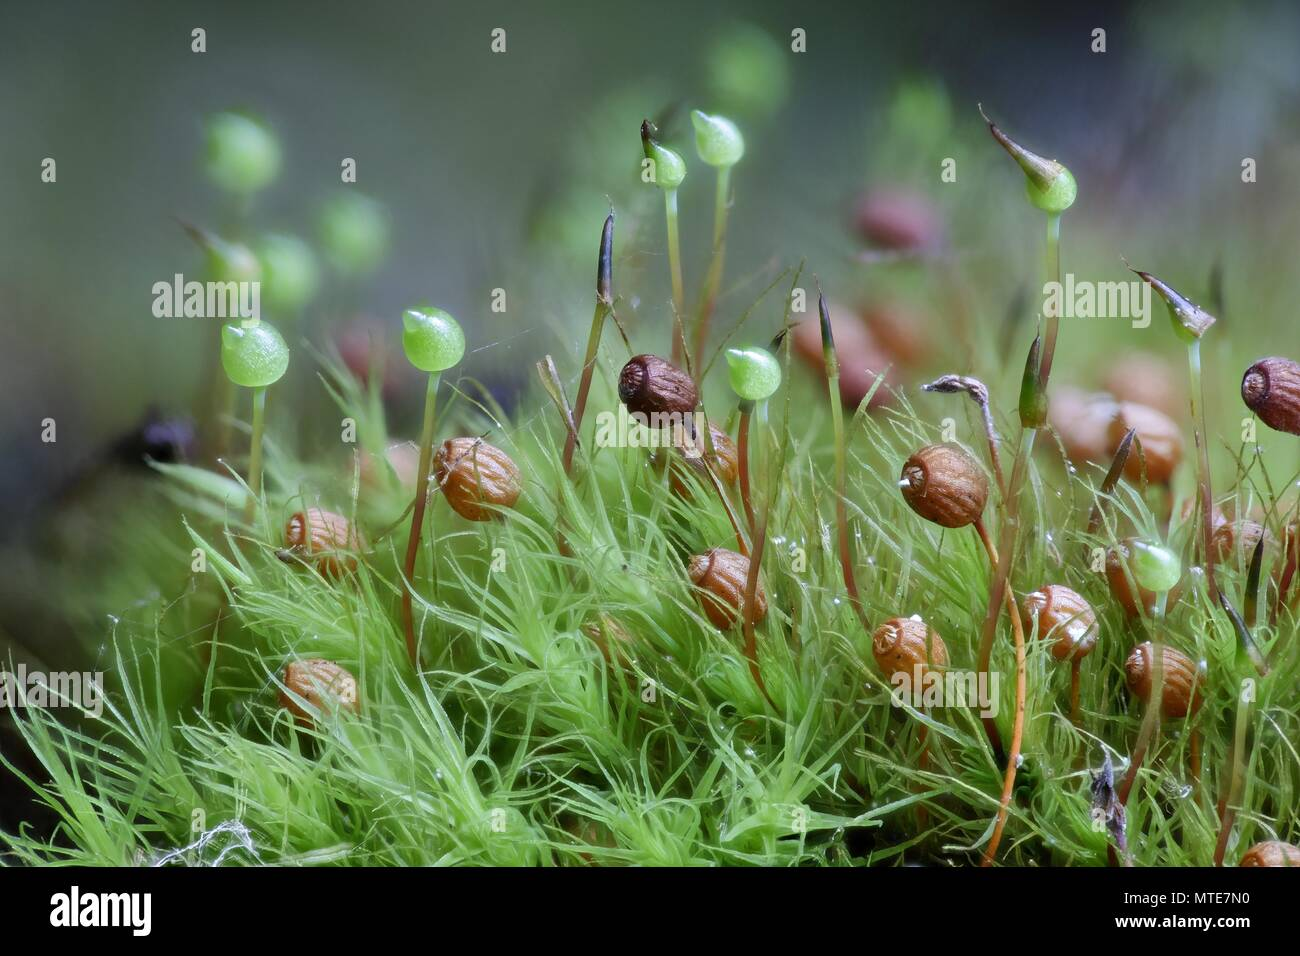 Apple-moss (Bartramia pomiformis), old and new spore capsules - Stock Image